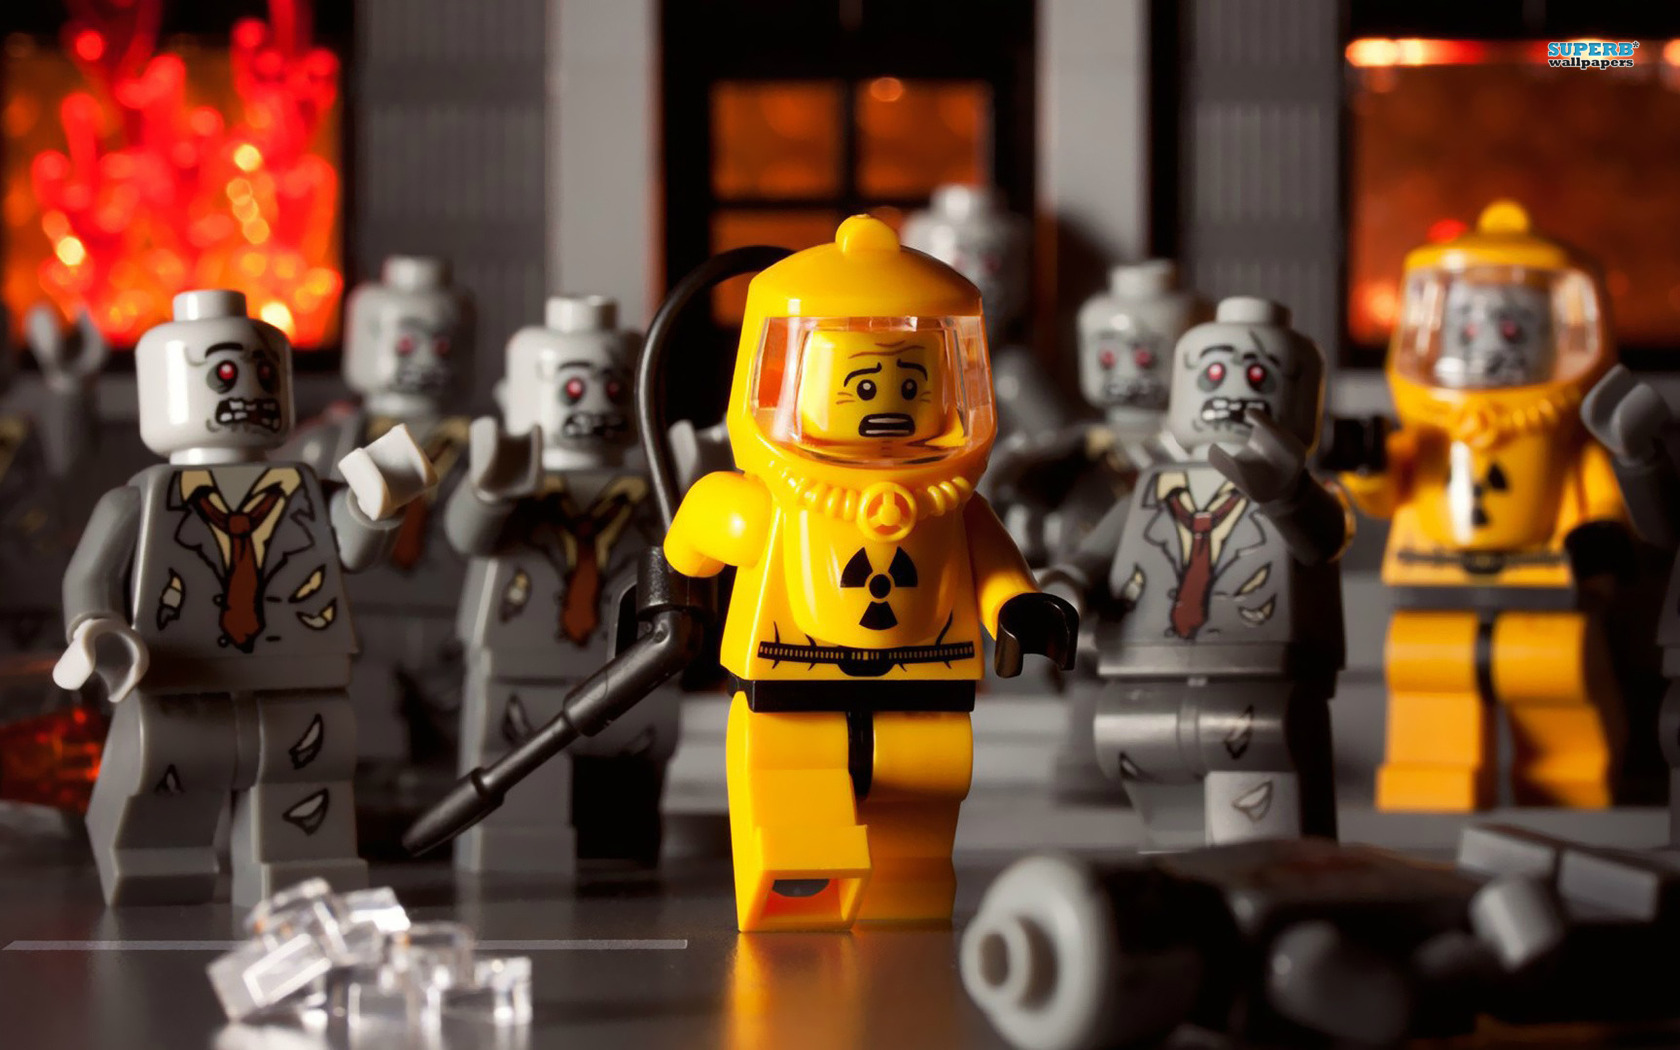 Lego Wallpaper Zombies HD Wallpaper 8175